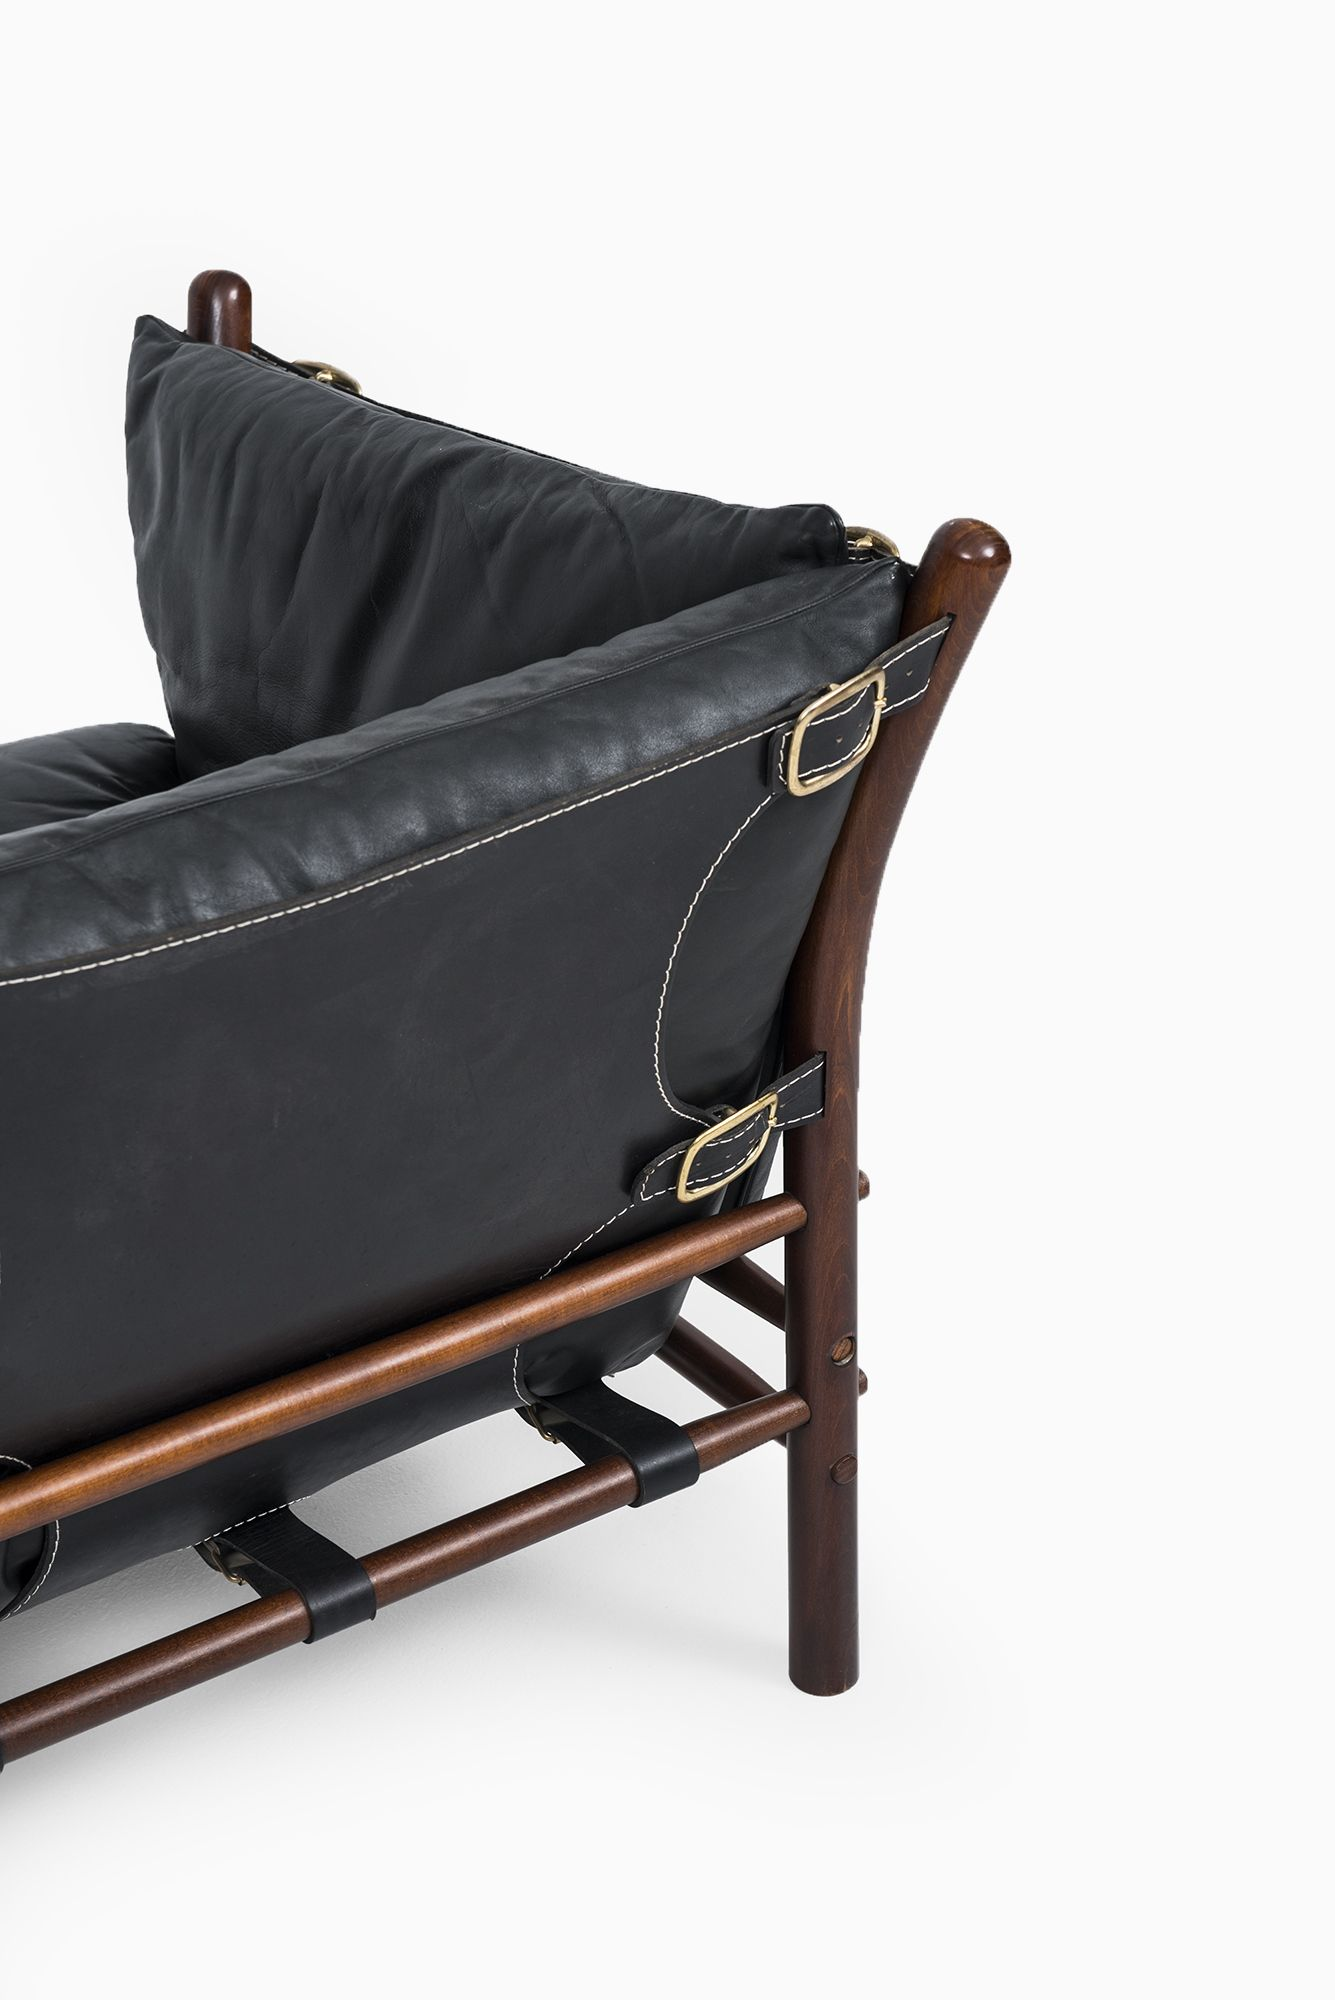 Arne Norell Ilona easy chairs in black leather at Studio Schalling